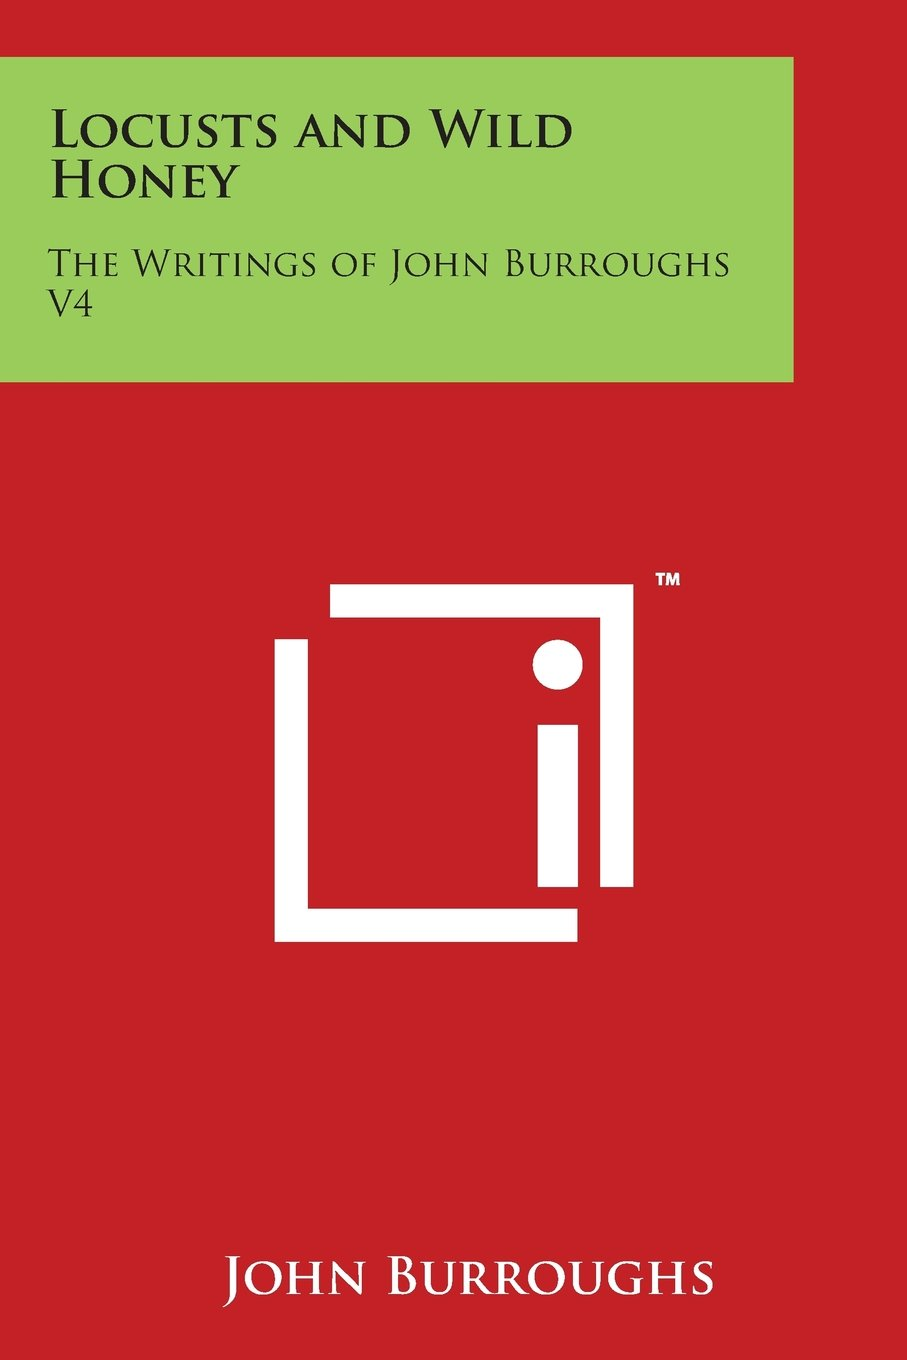 Locusts and Wild Honey: The Writings of John Burroughs V4